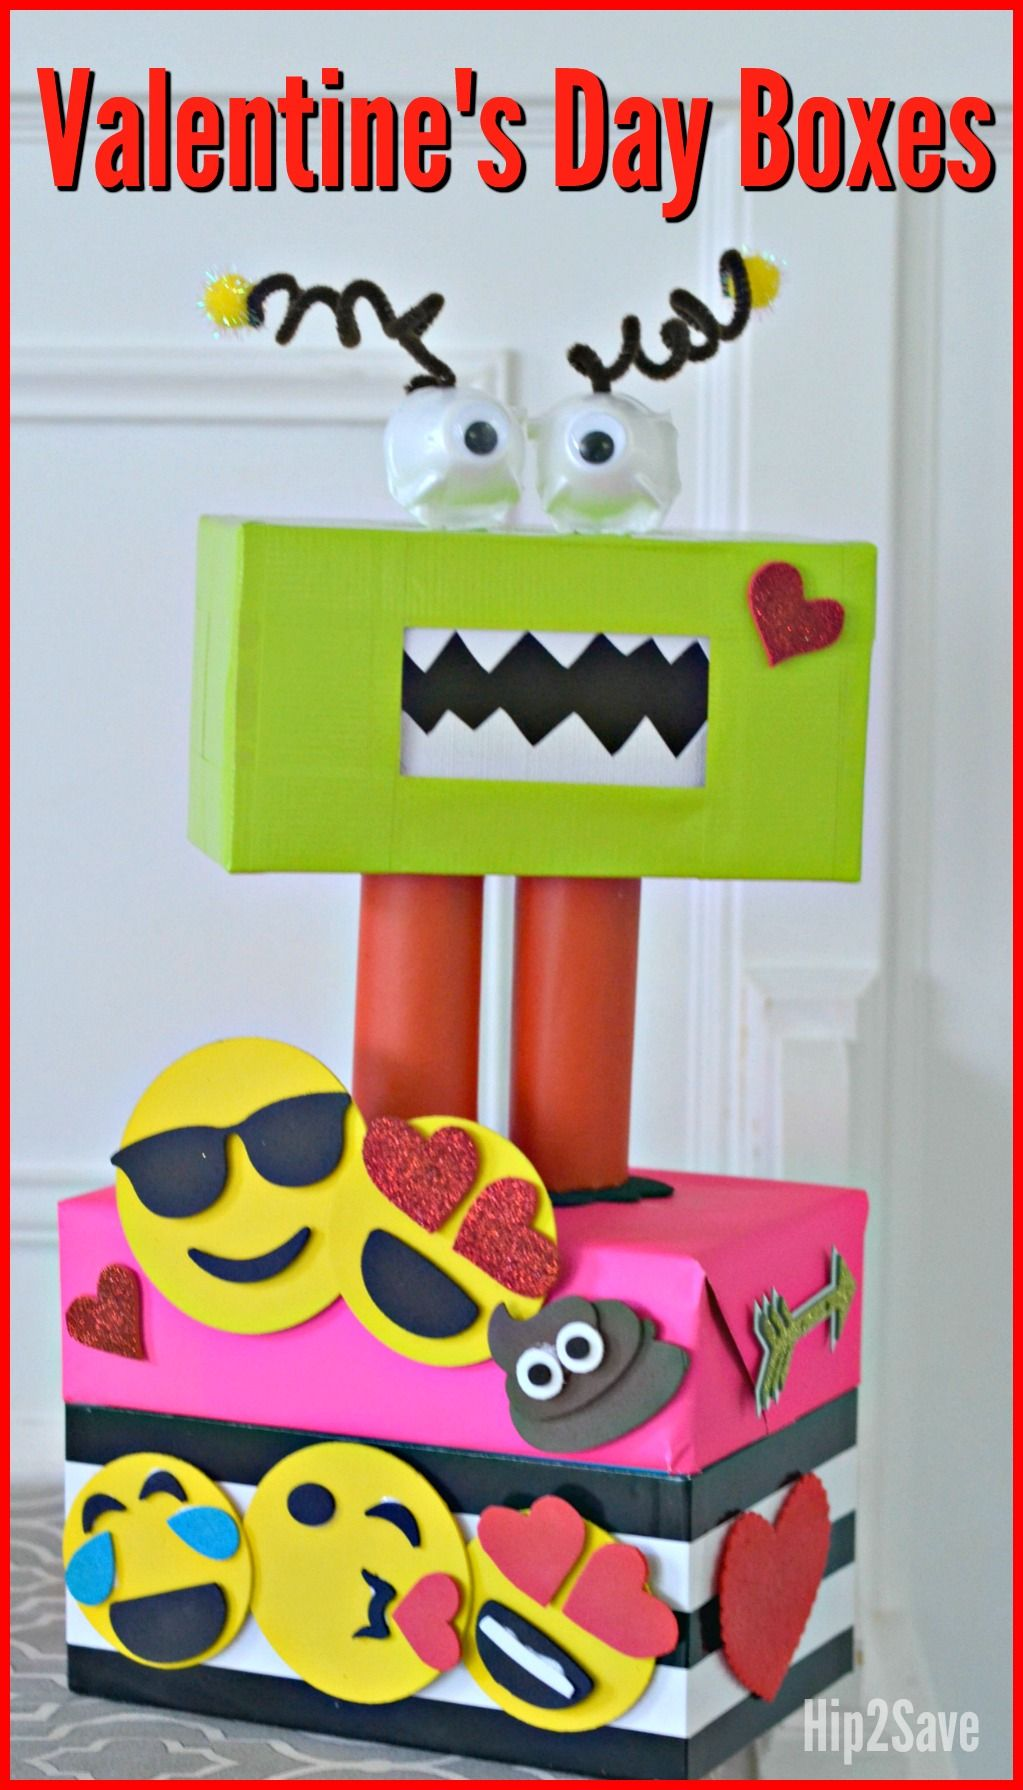 Creative Valentine S Day Box Ideas Monster And Emoji Themed Hip2save Valentine Day Boxes Kids Valentine Boxes Emoji Valentines